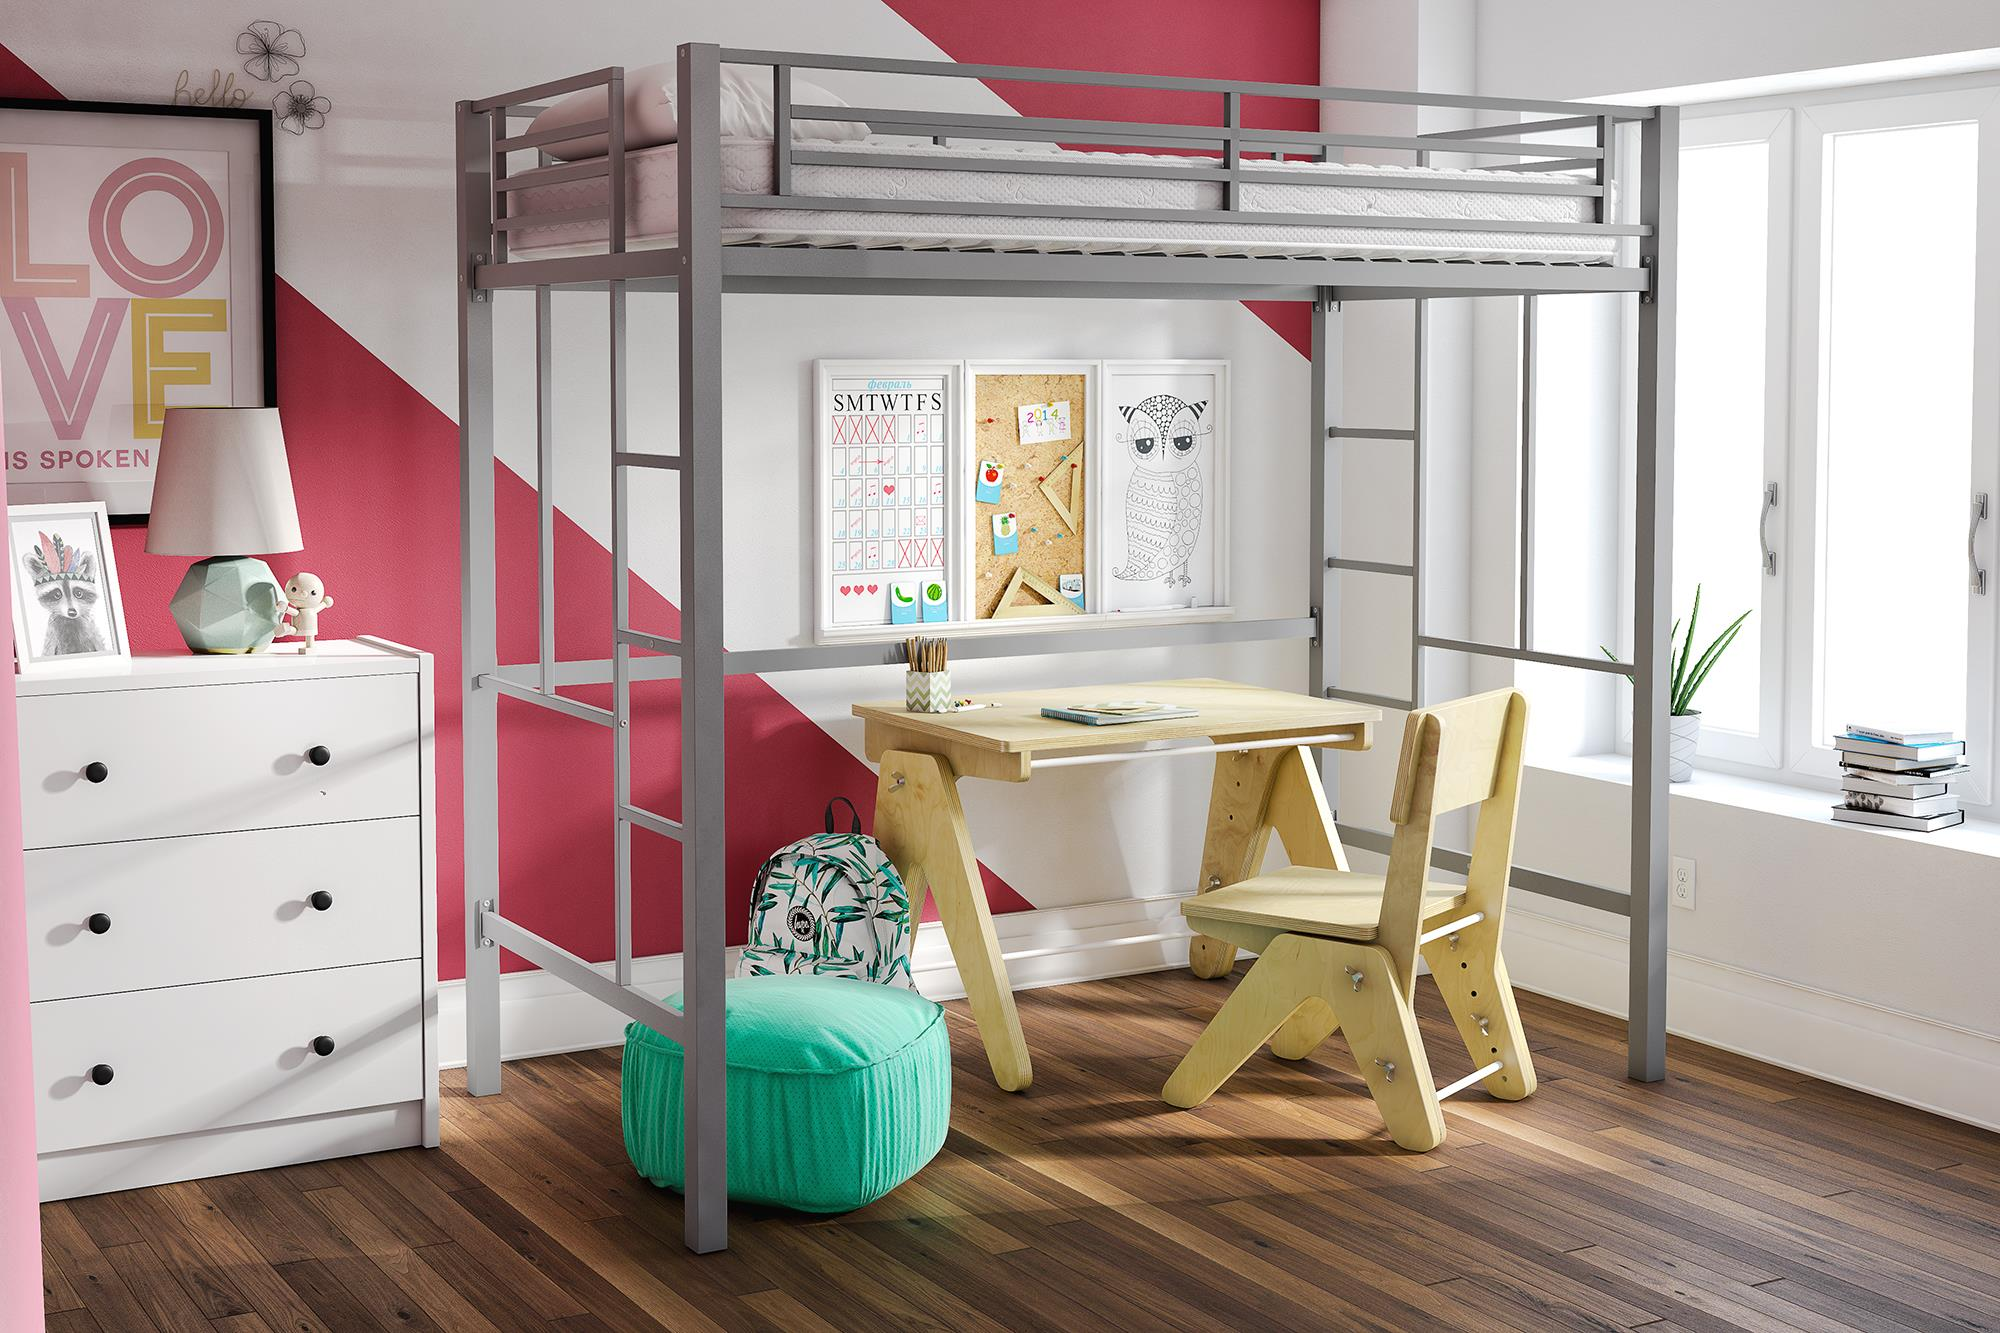 design closet dorm image safe diy this source for living hanger an room tips dig organization organized